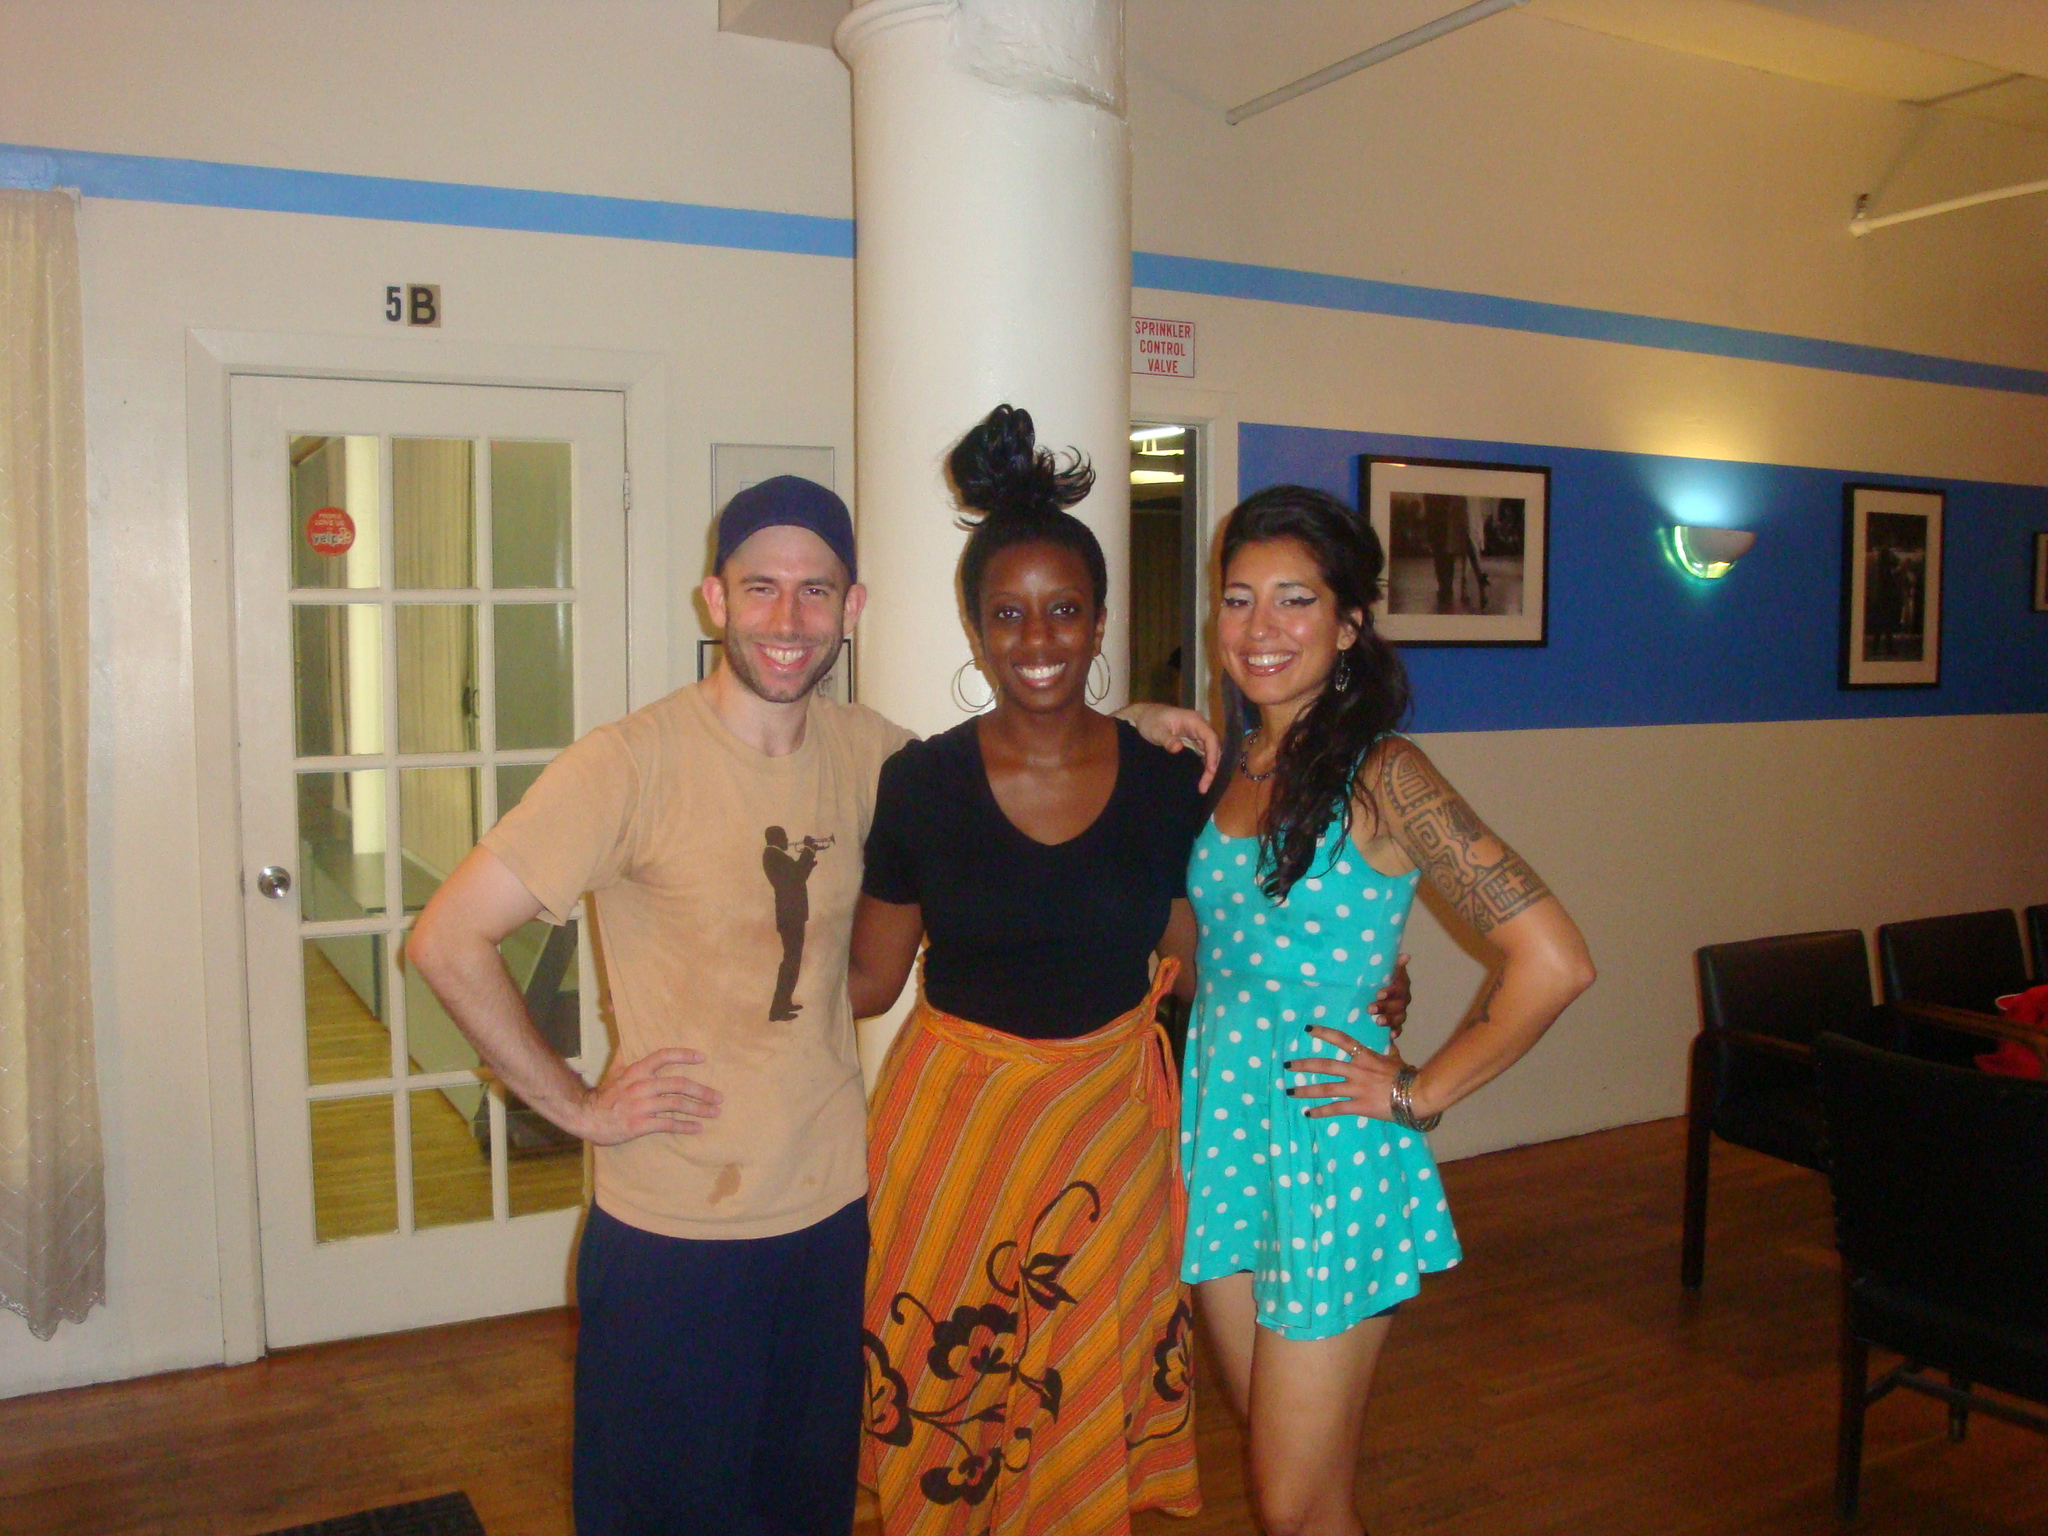 With Nathan Bugh and Giselle Anguizola